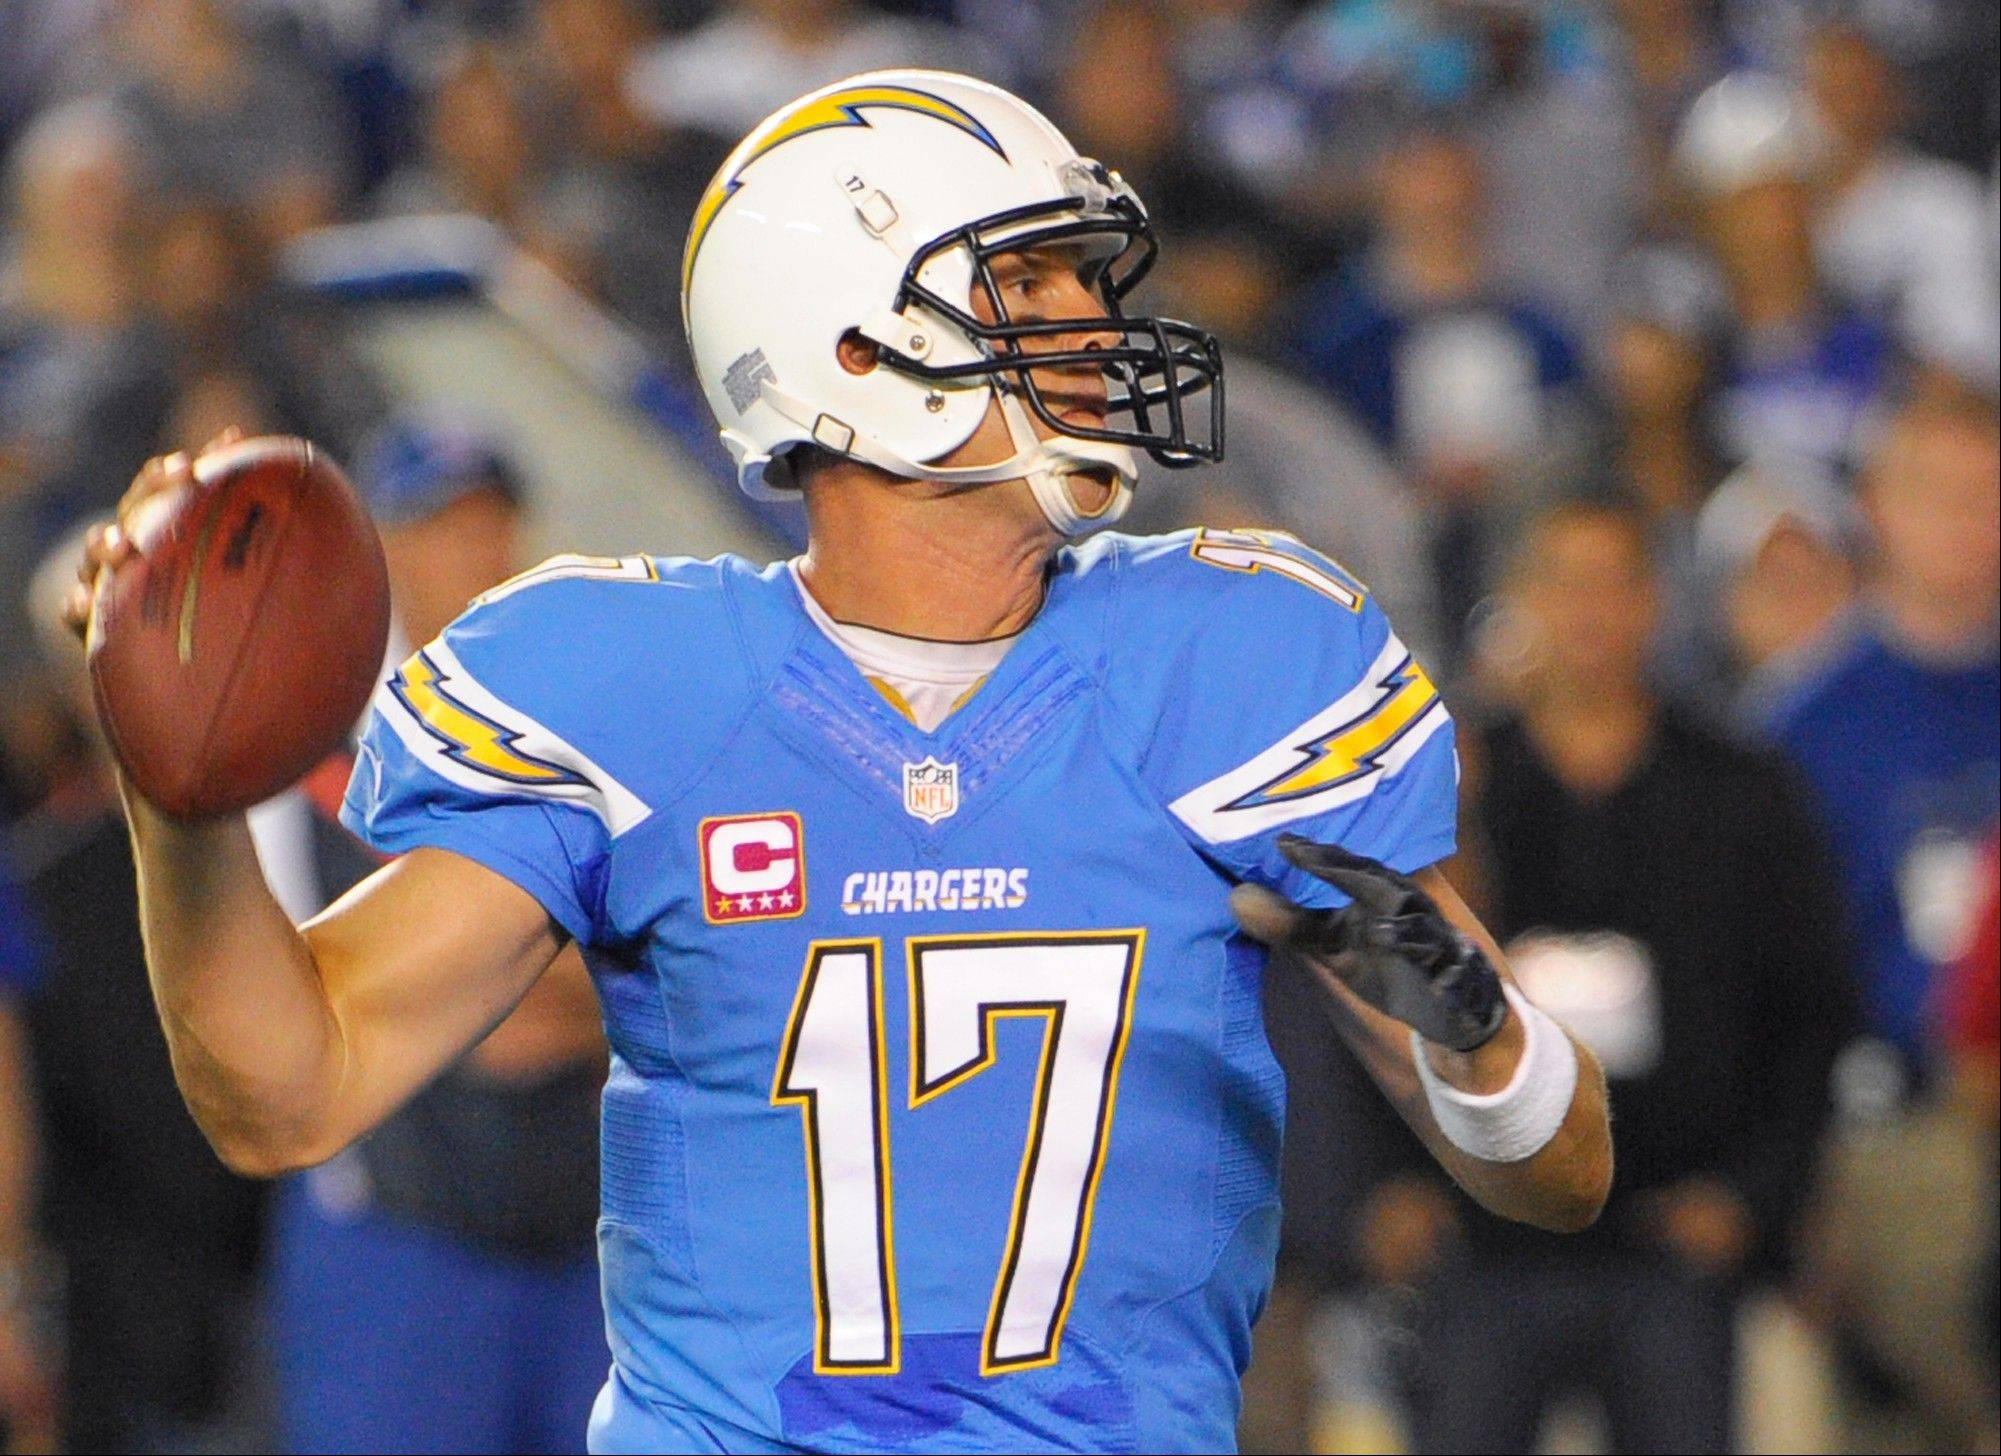 San Diego Chargers quarterback Philip Rivers was 22 of 33 for 237 yards and no interceptions in Monday's home win over the Colts.